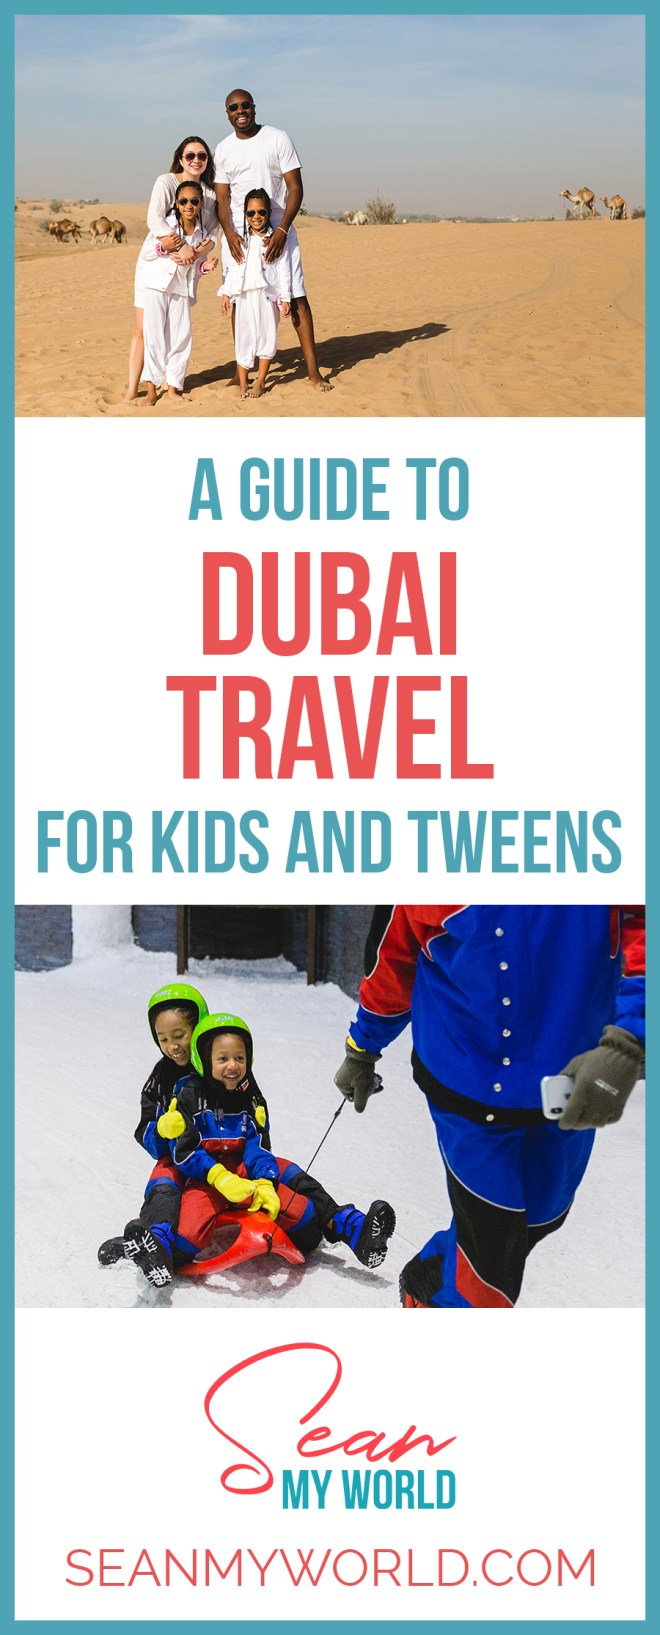 I'm excited to share this Dubai 2018 travel guide with you! If you're looking for a Dubai travel guide for what to do in Dubai with kids, you've come to the right place.